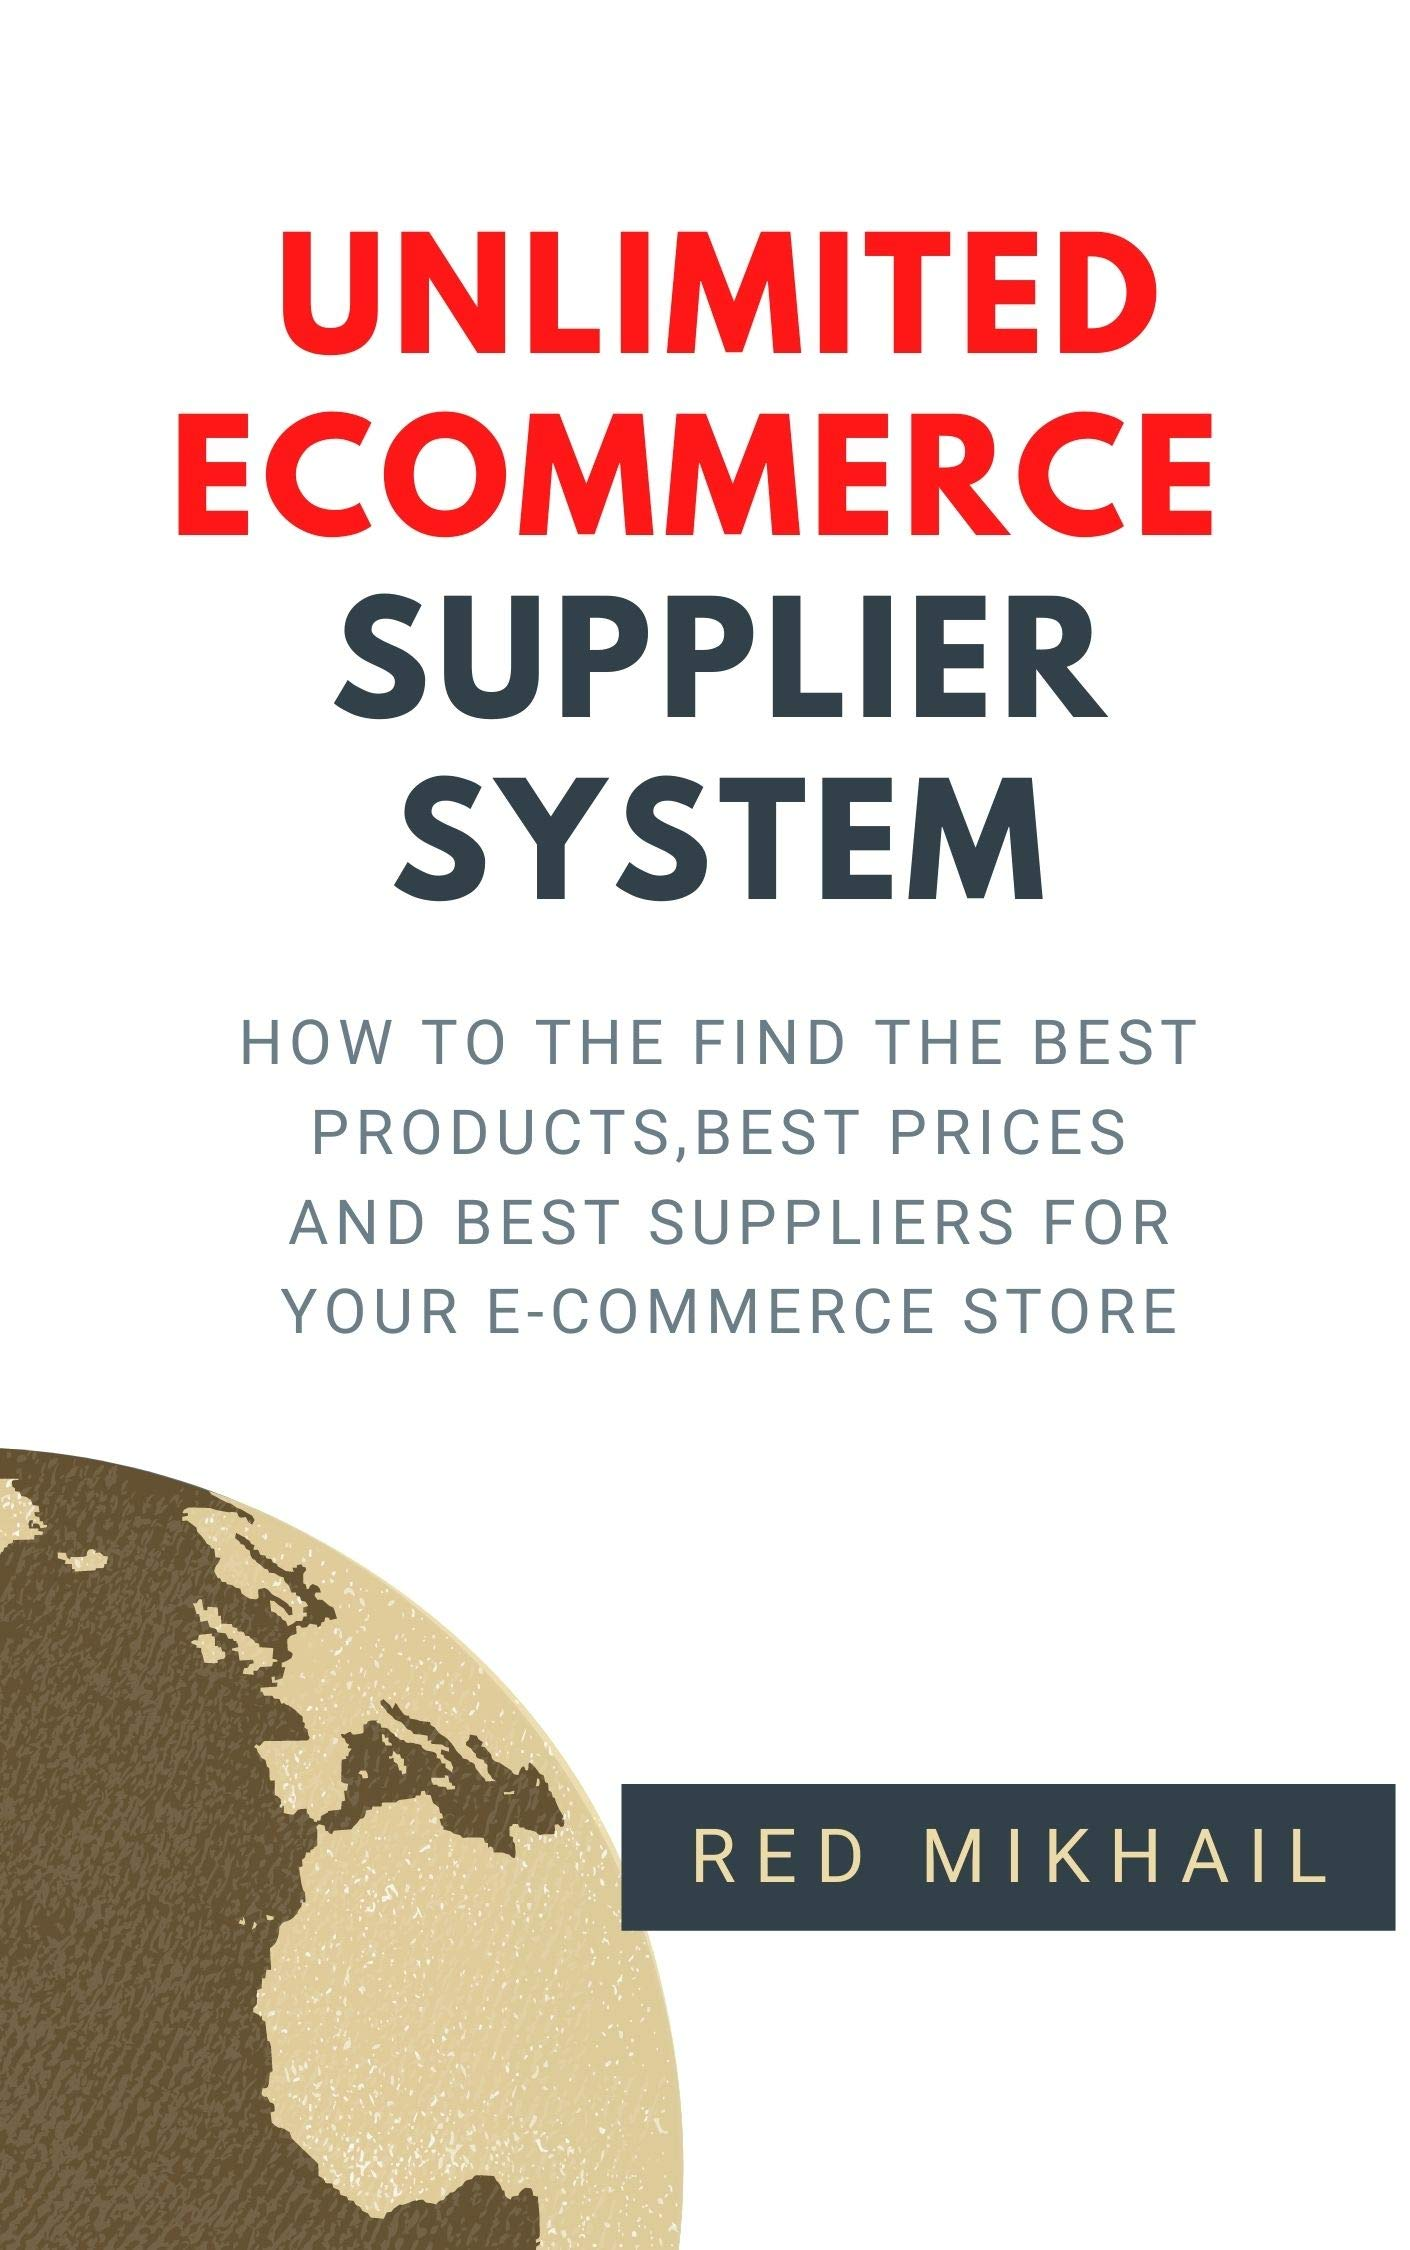 UNLIMITED E-COMMERCE SUPPLIERS SYSTEM: How to the find the best products, best prices and best suppliers for your e-commerce store (E-Commerce from A – Z Series Book 2)